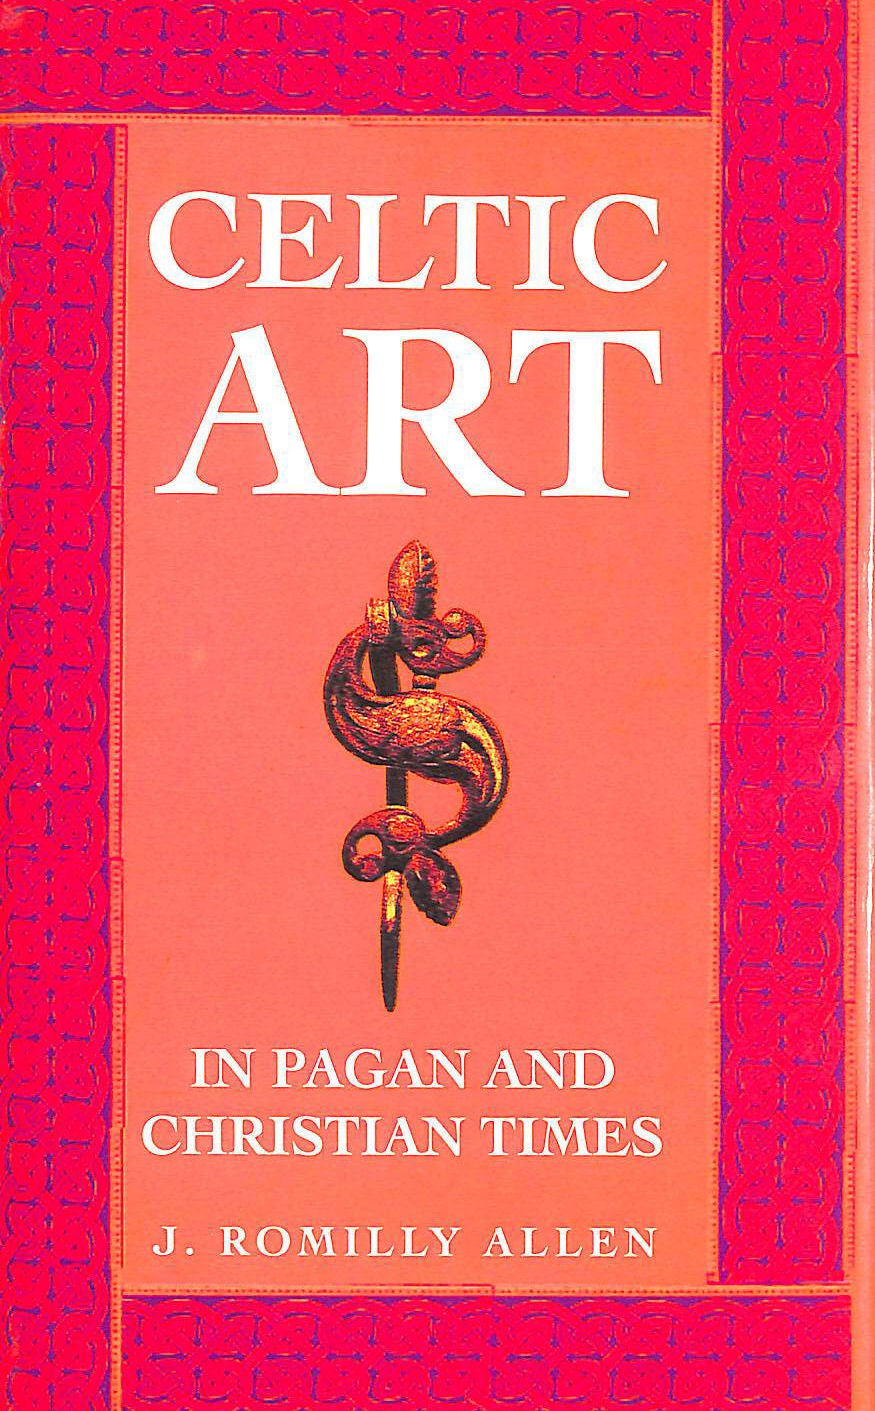 Image for Celtic Art in Pagan and Christian Times